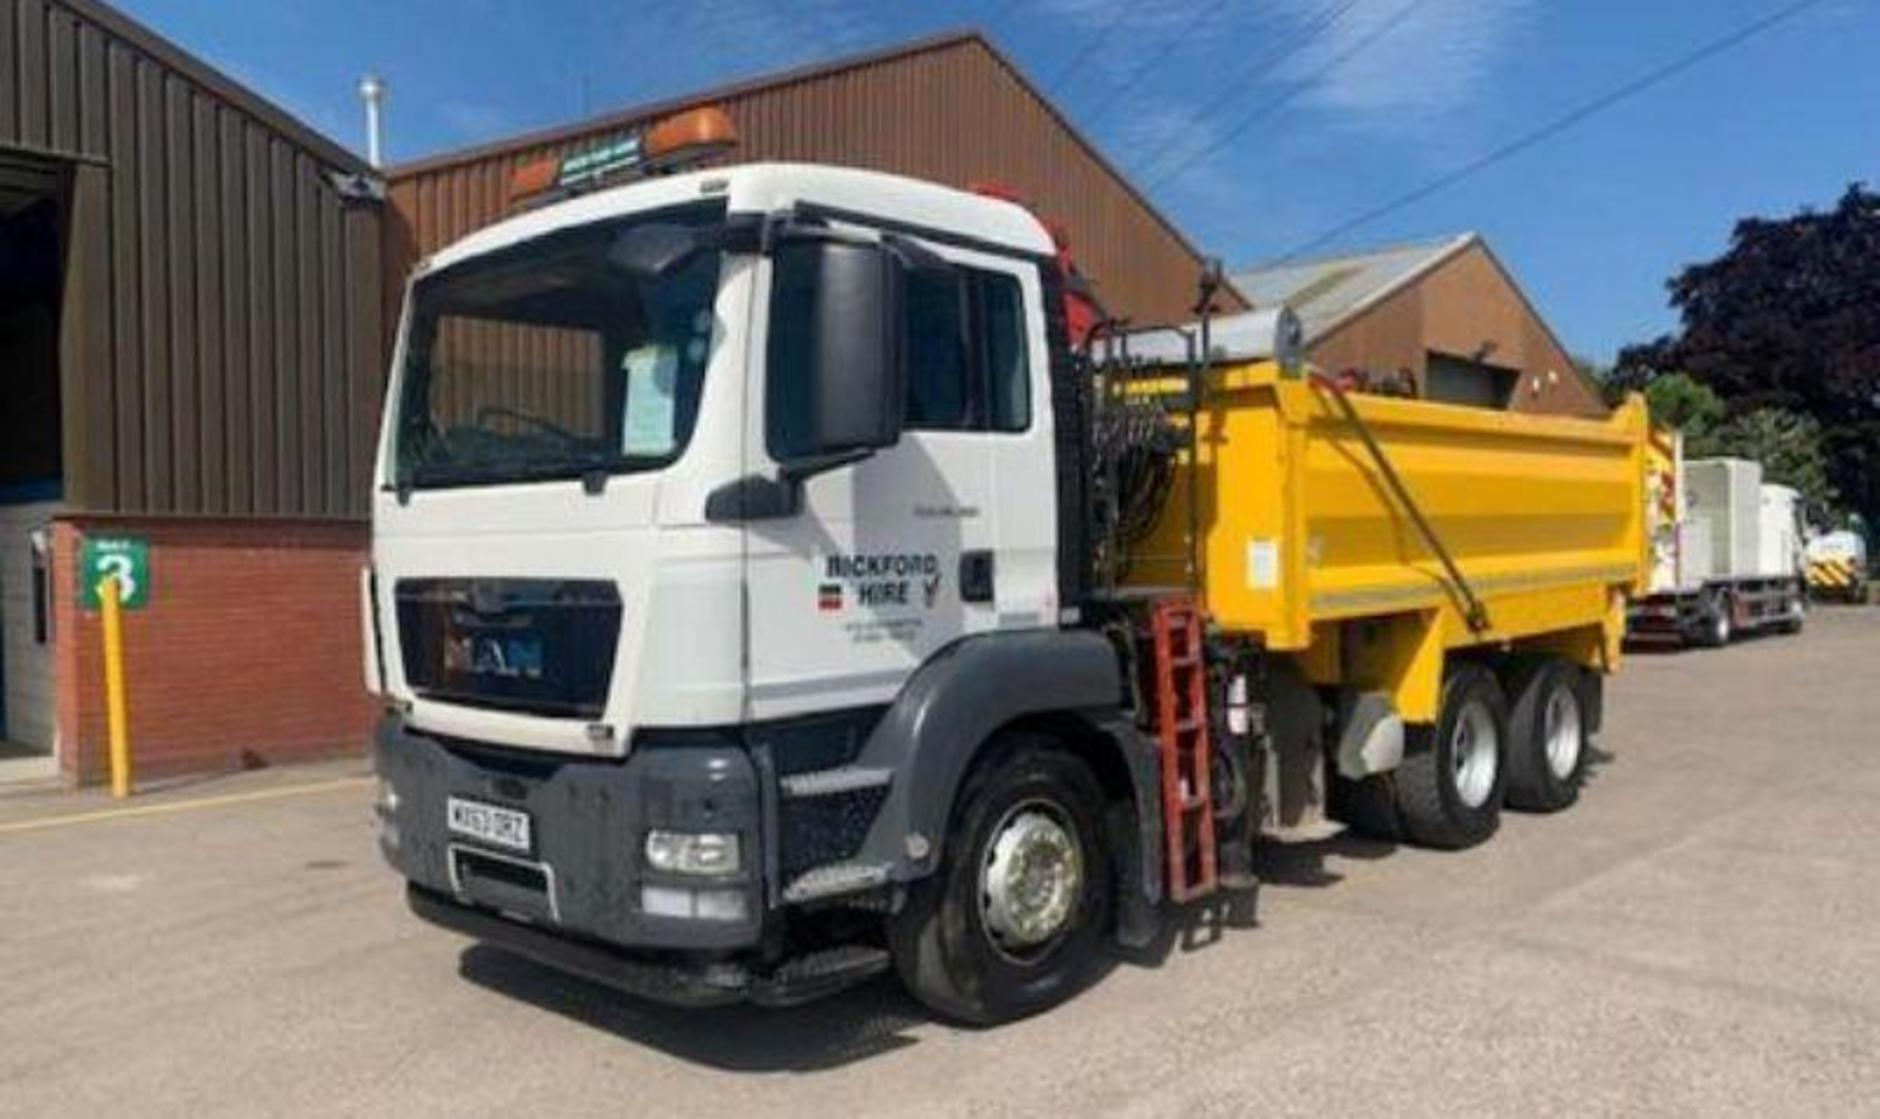 MAN TGX tipper